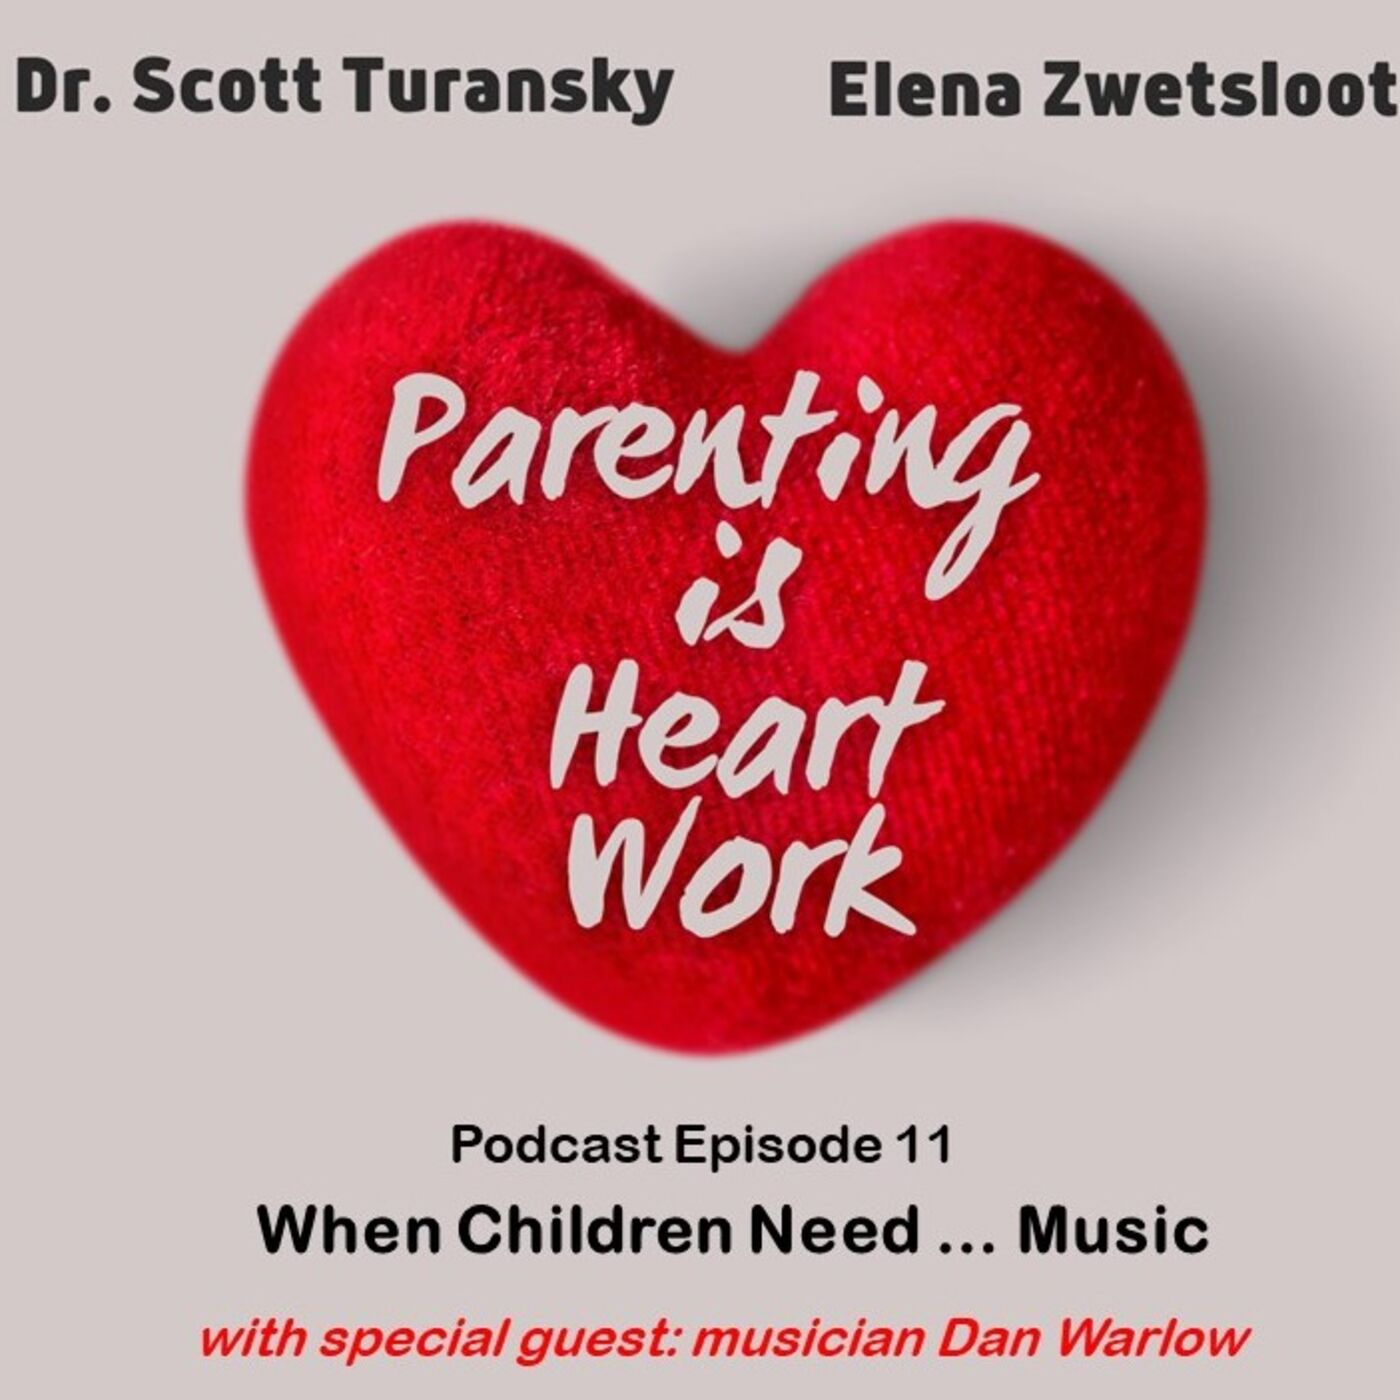 10. When Children Need Music (with Special Guest Dan Warlow)